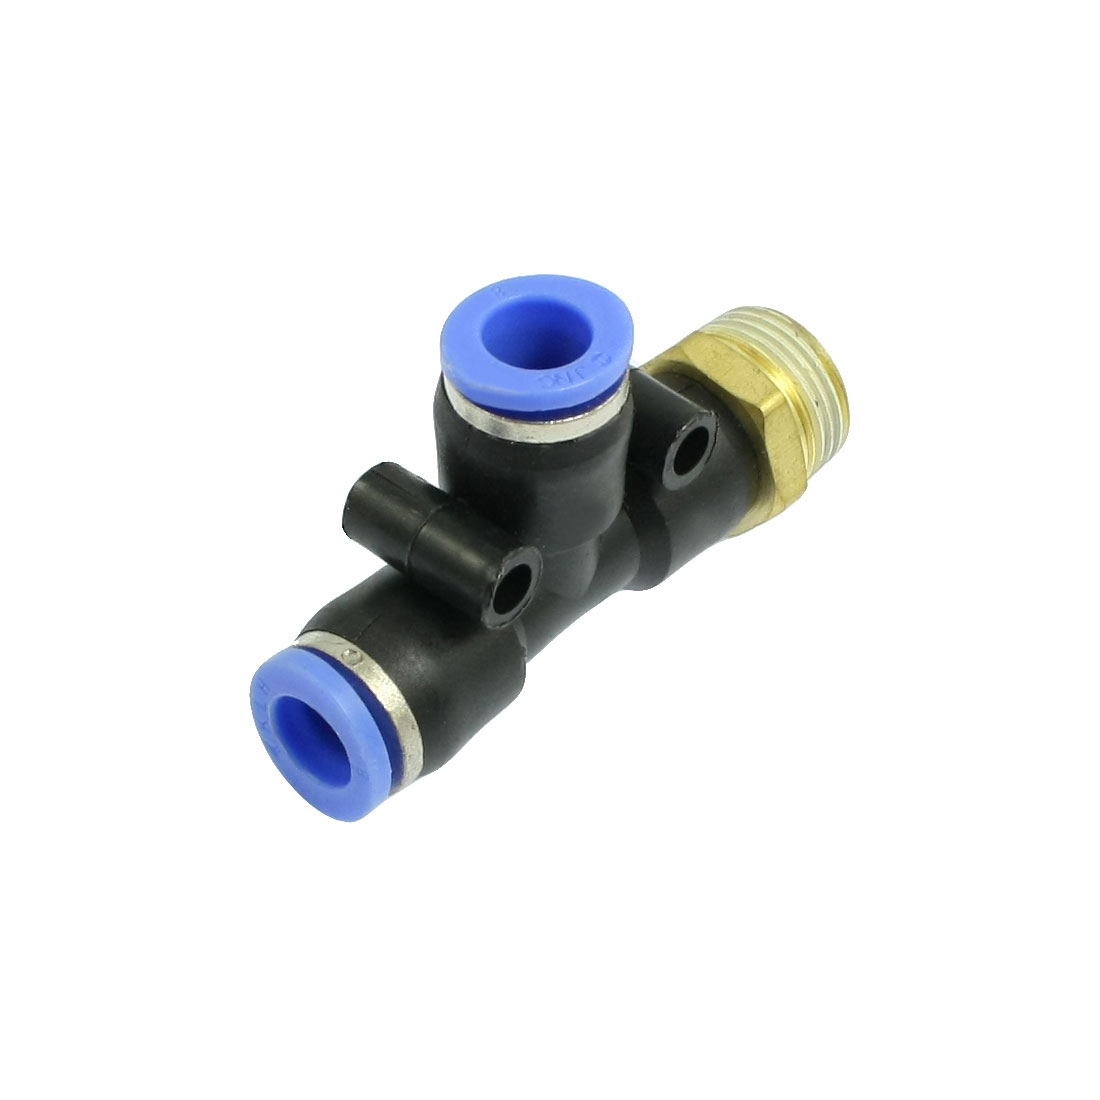 T Shaped 3/8 Male Thread to 8mm Push in Joint Pneumatic Quick Fitting Connector